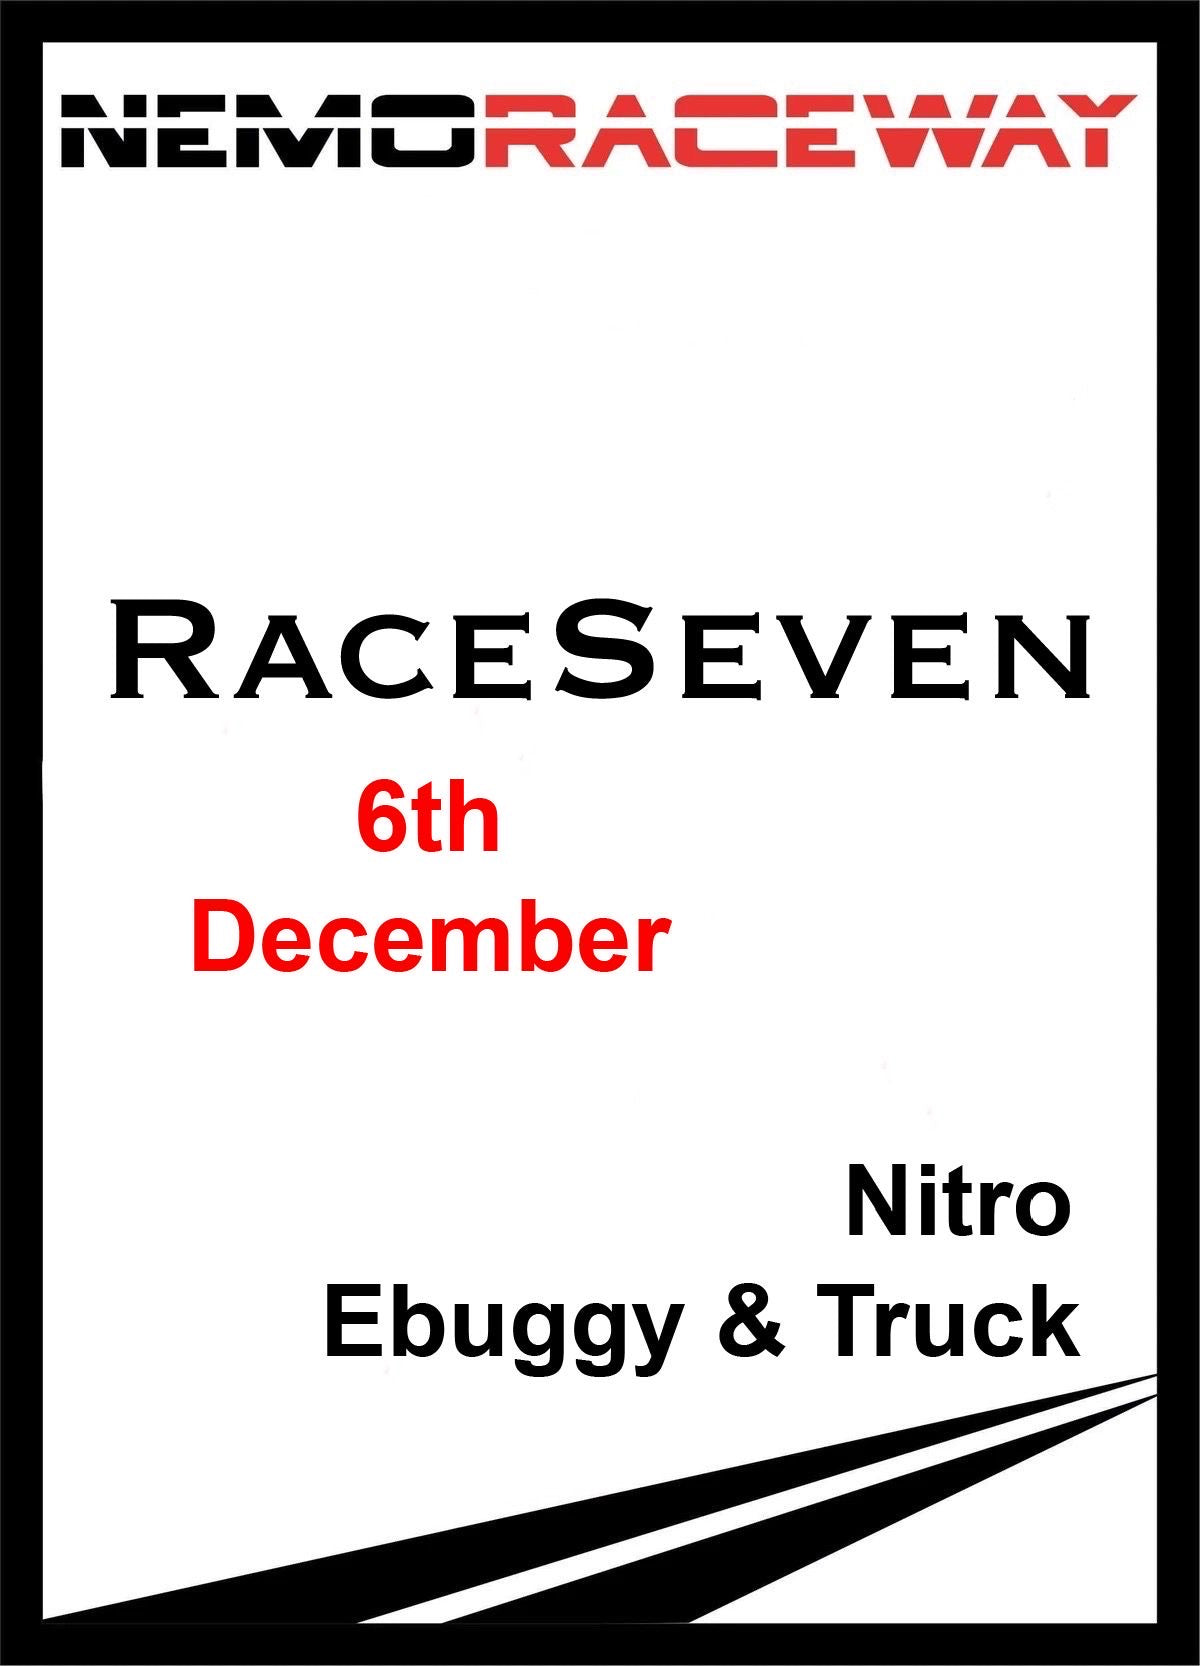 RaceSeven 6th December